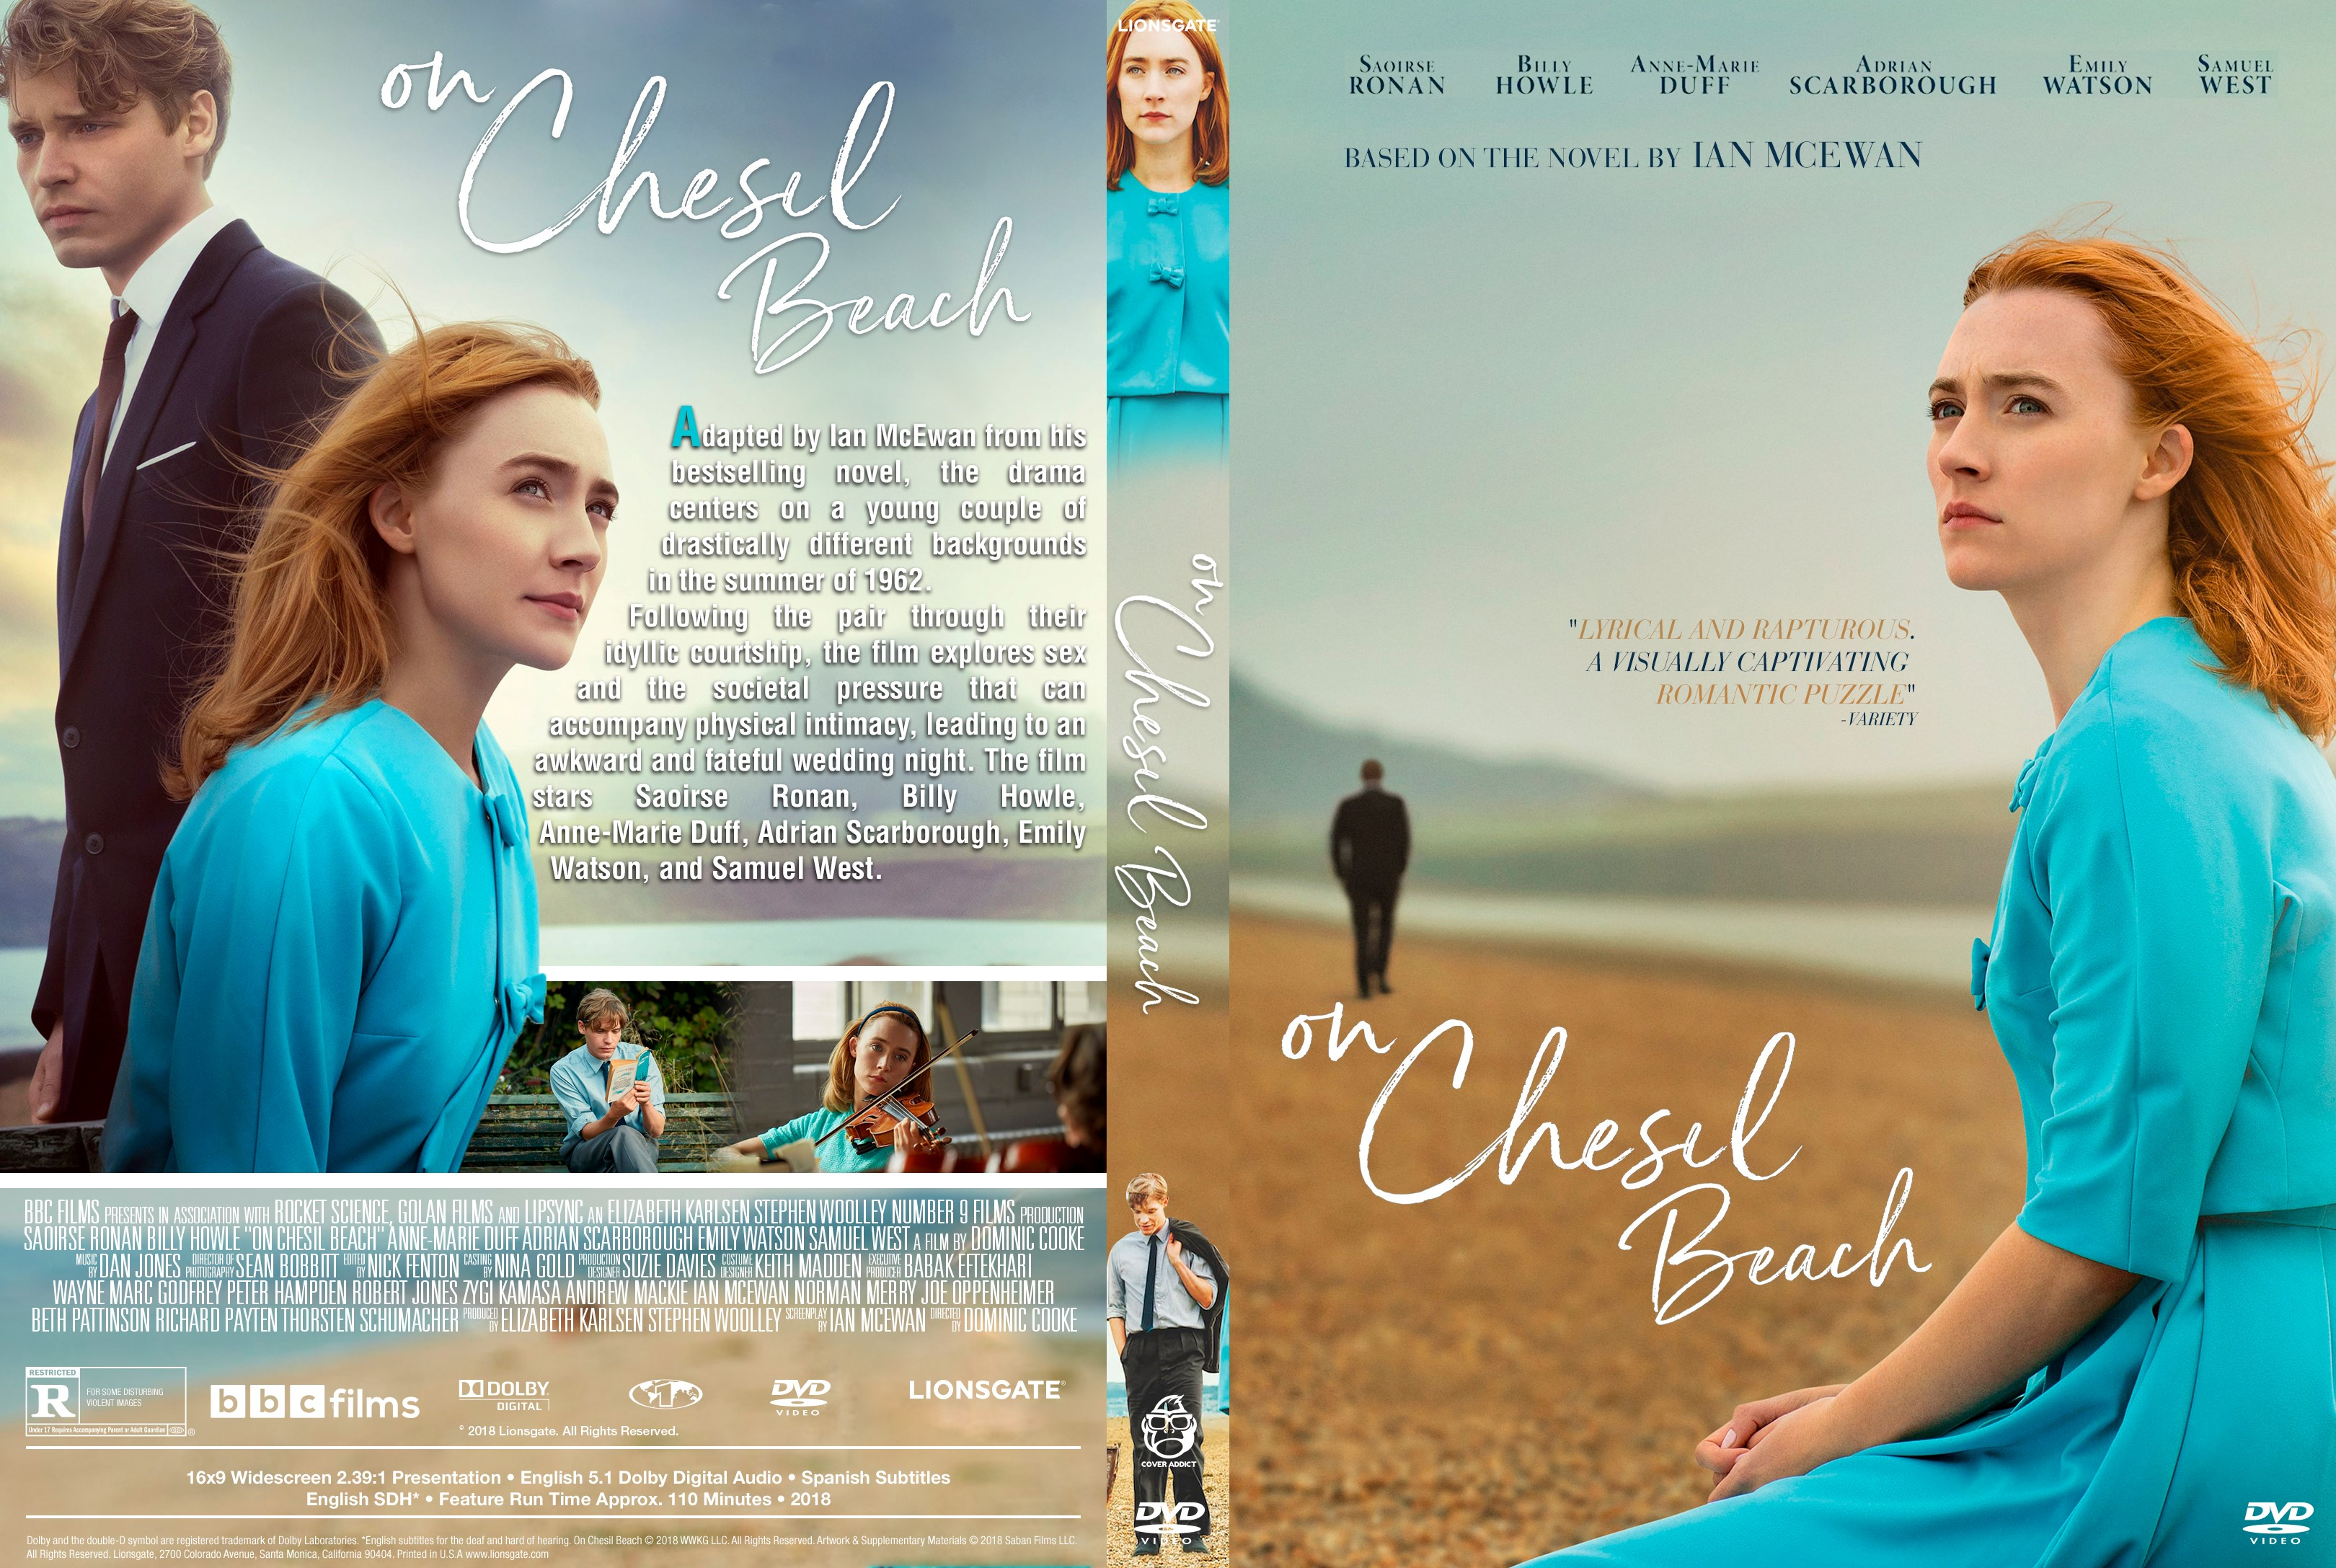 On Chesil Beach DVD Cover | Cover Addict - Free DVD ...